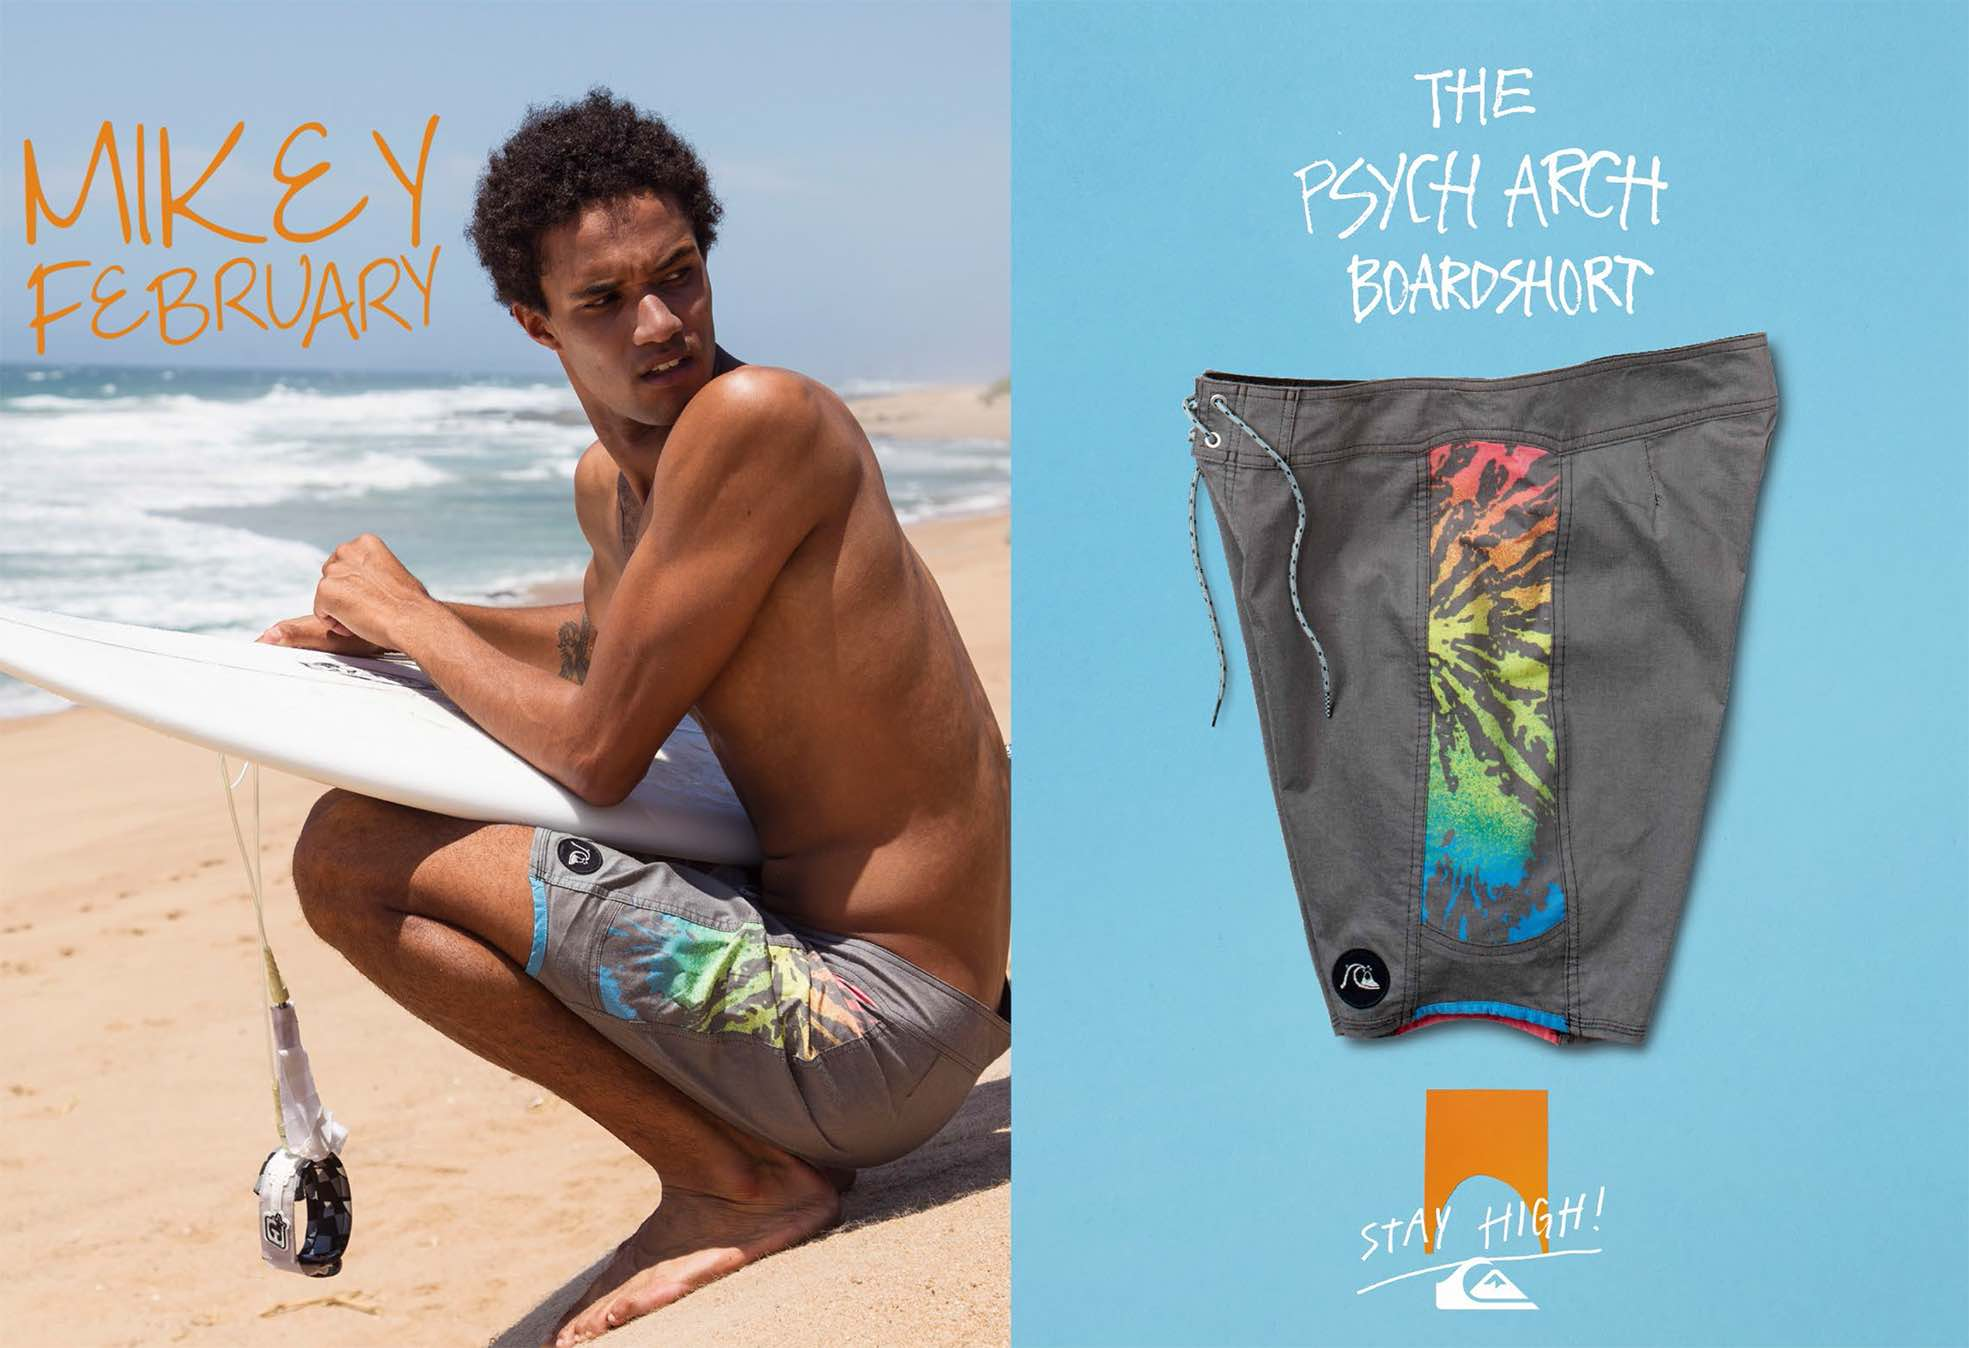 Surfing legend Mikey February wearing the Quicksilver Psych Boardshort